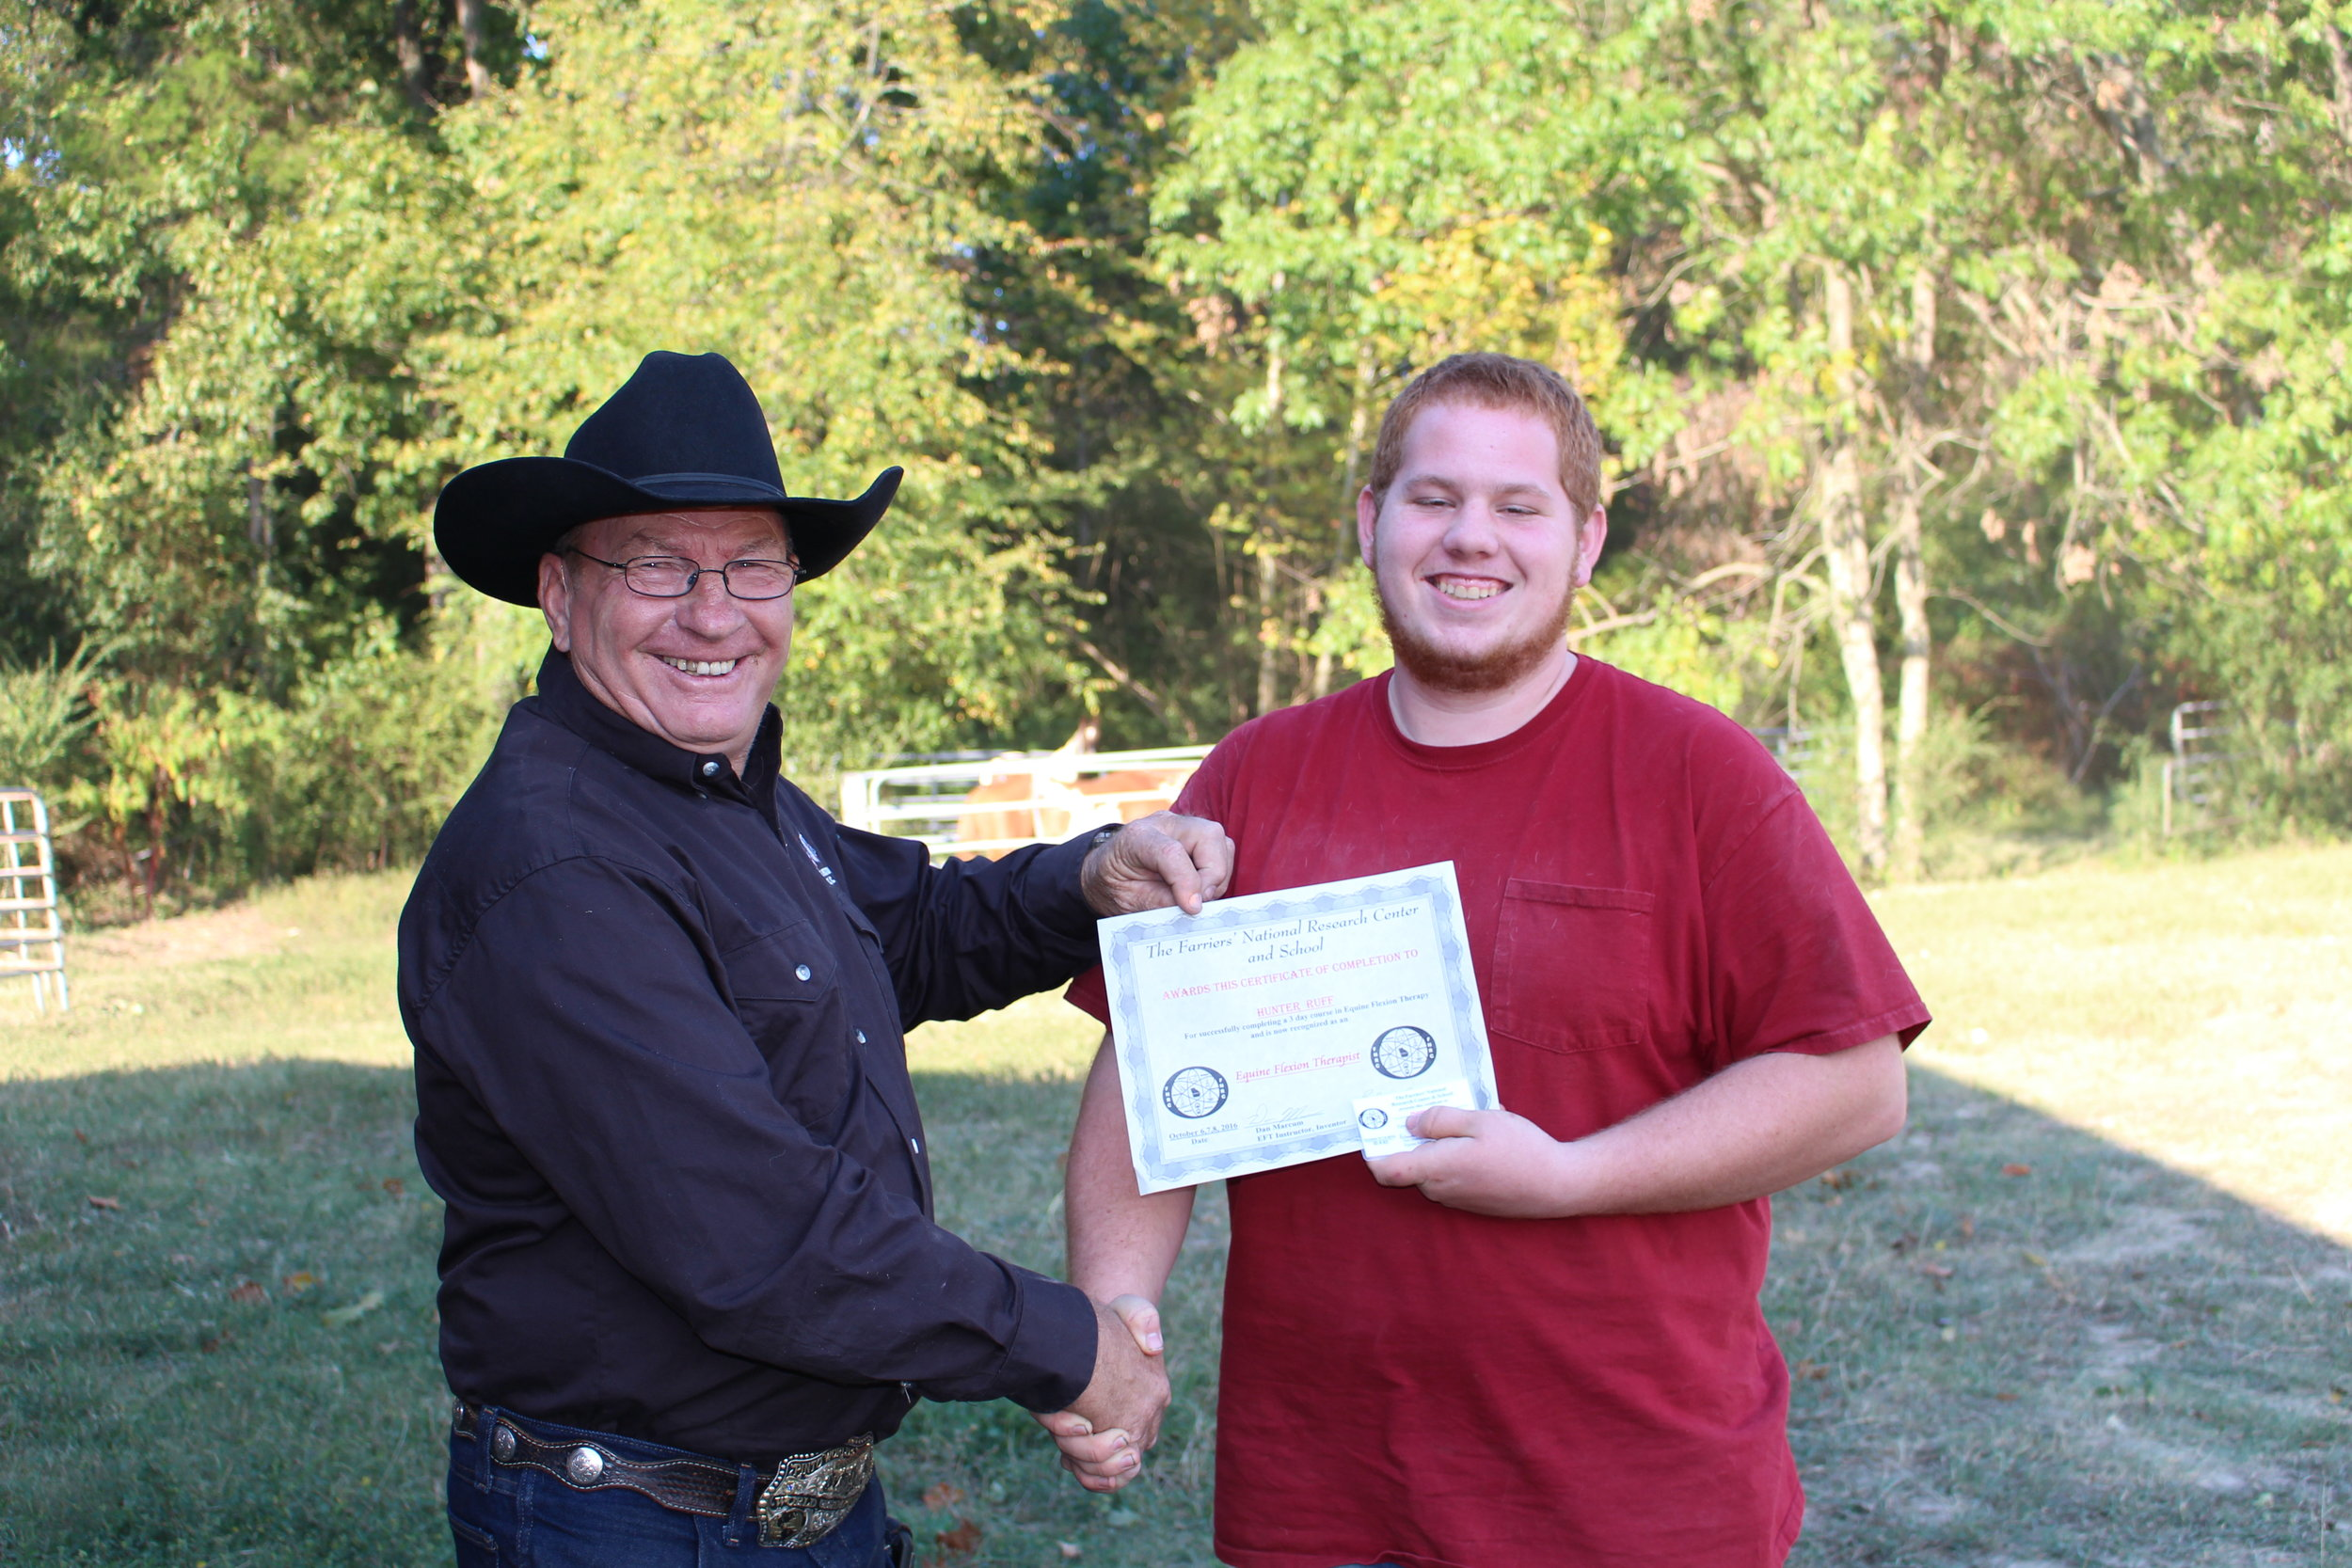 EFT clinic GA Oct 6,7,8 2016 Hunter Ruff, GA.JPG